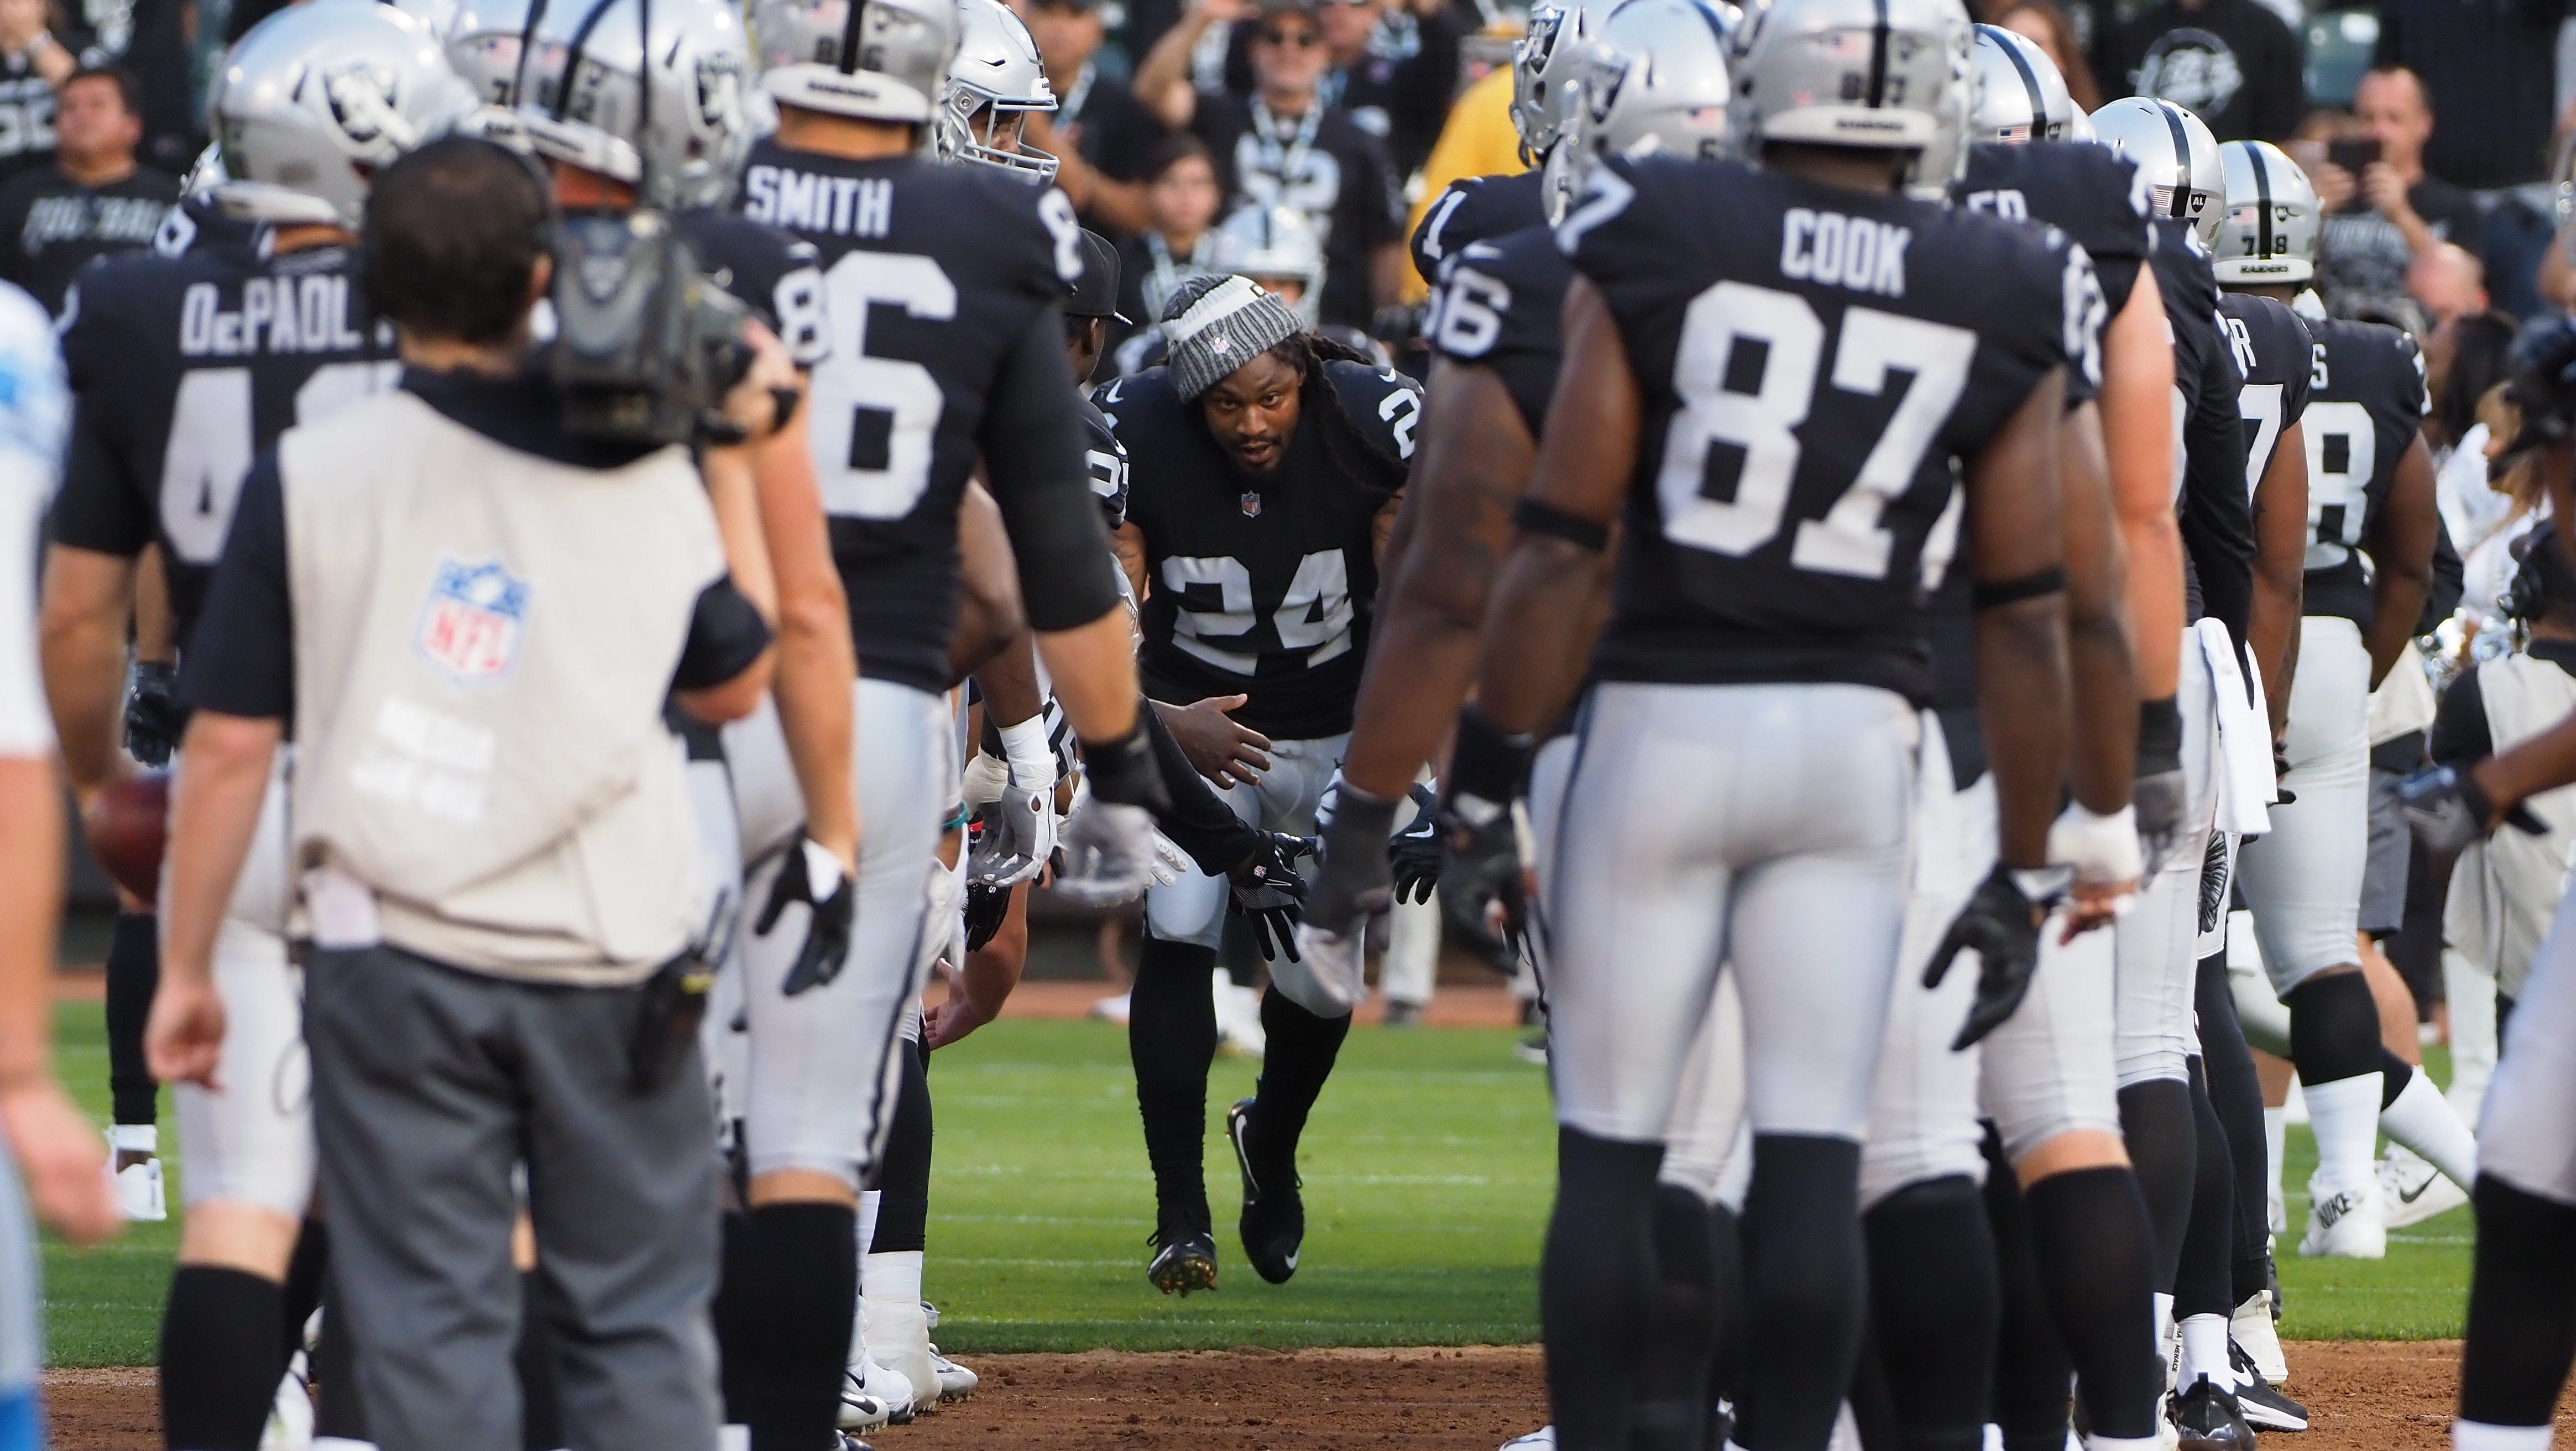 Raiders running back Marshawn Lynch is introduced before a game against the Detroit Lions at Oakland Coliseum.